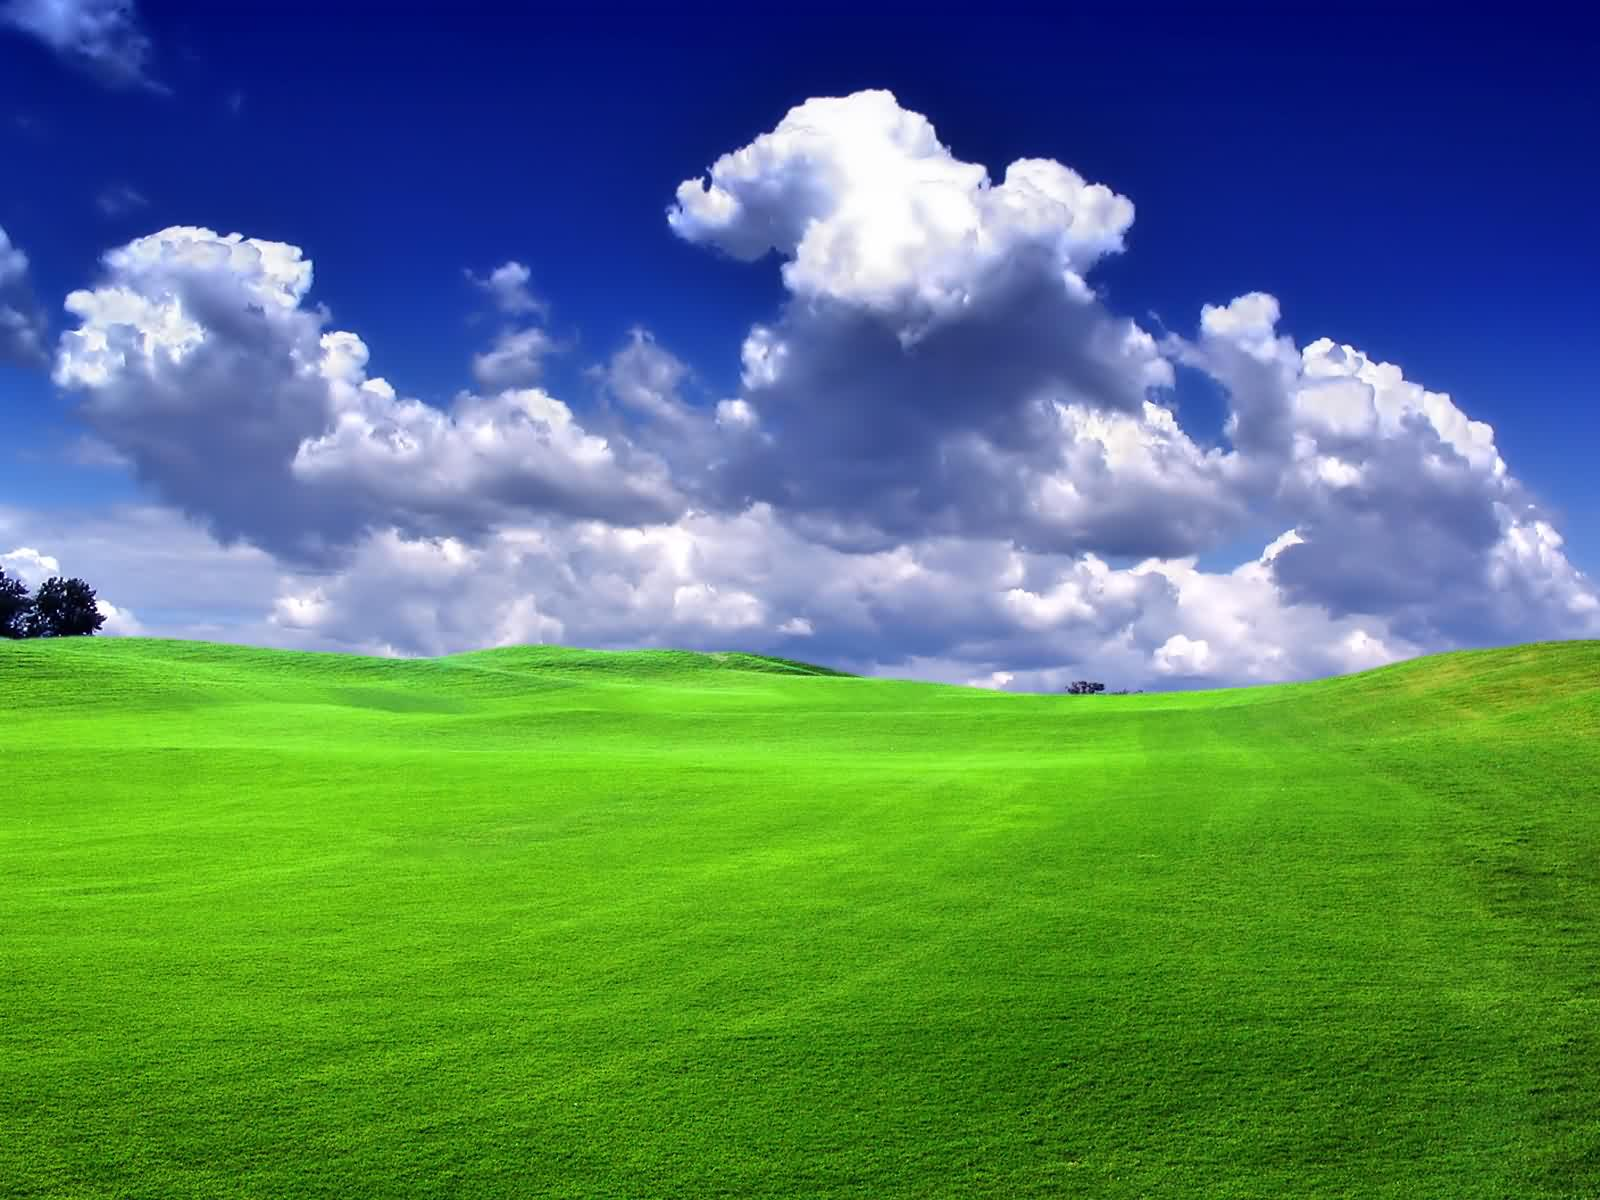 Vista HD Wallpaper 1080P